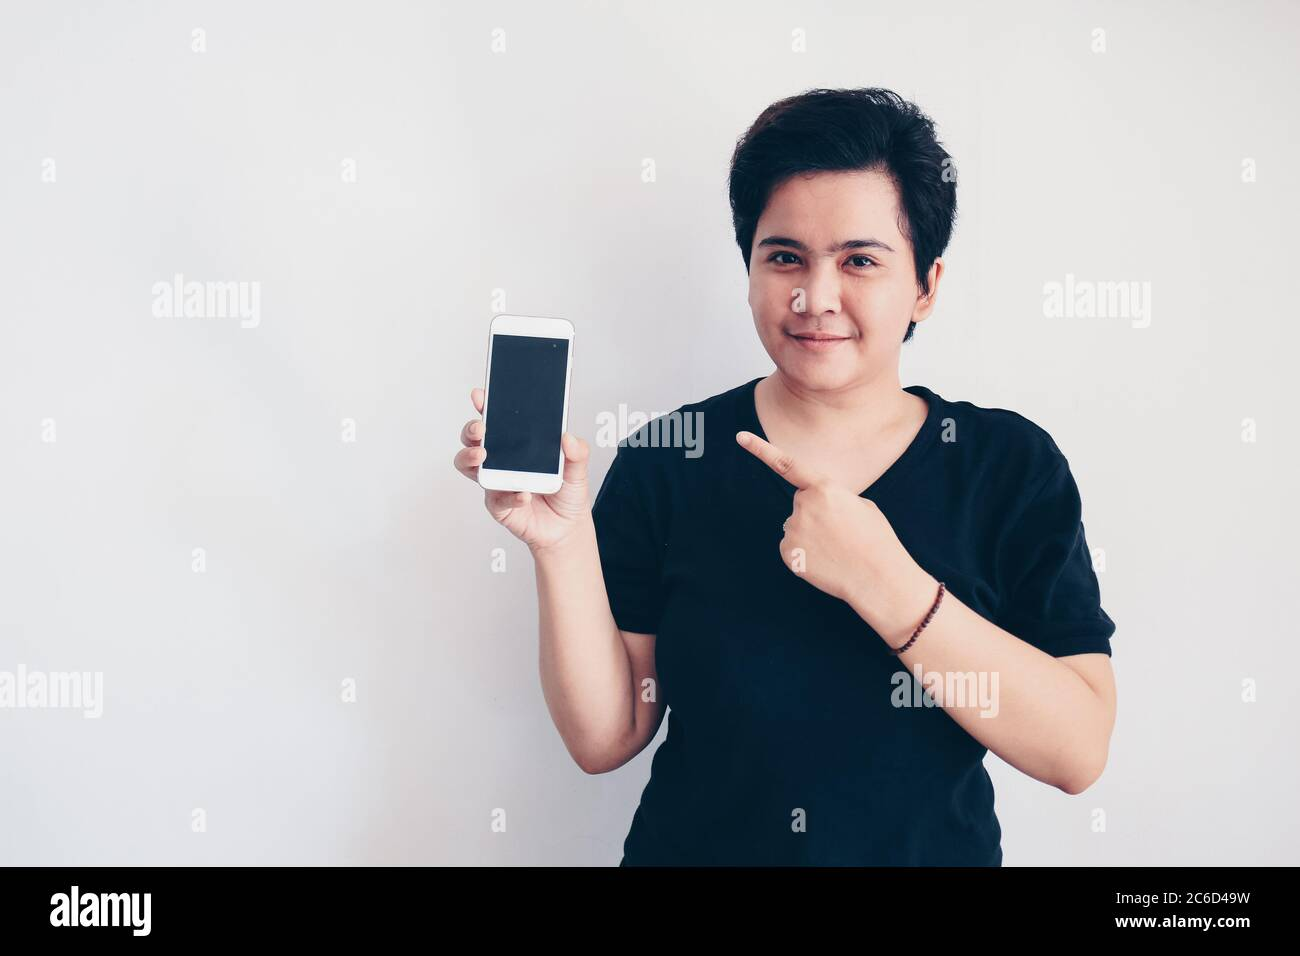 Young Beautiful Short Hair Asian Woman Holding Blank Black Screen Smart Phone On White Background Indonesia Women Stock Photo Alamy